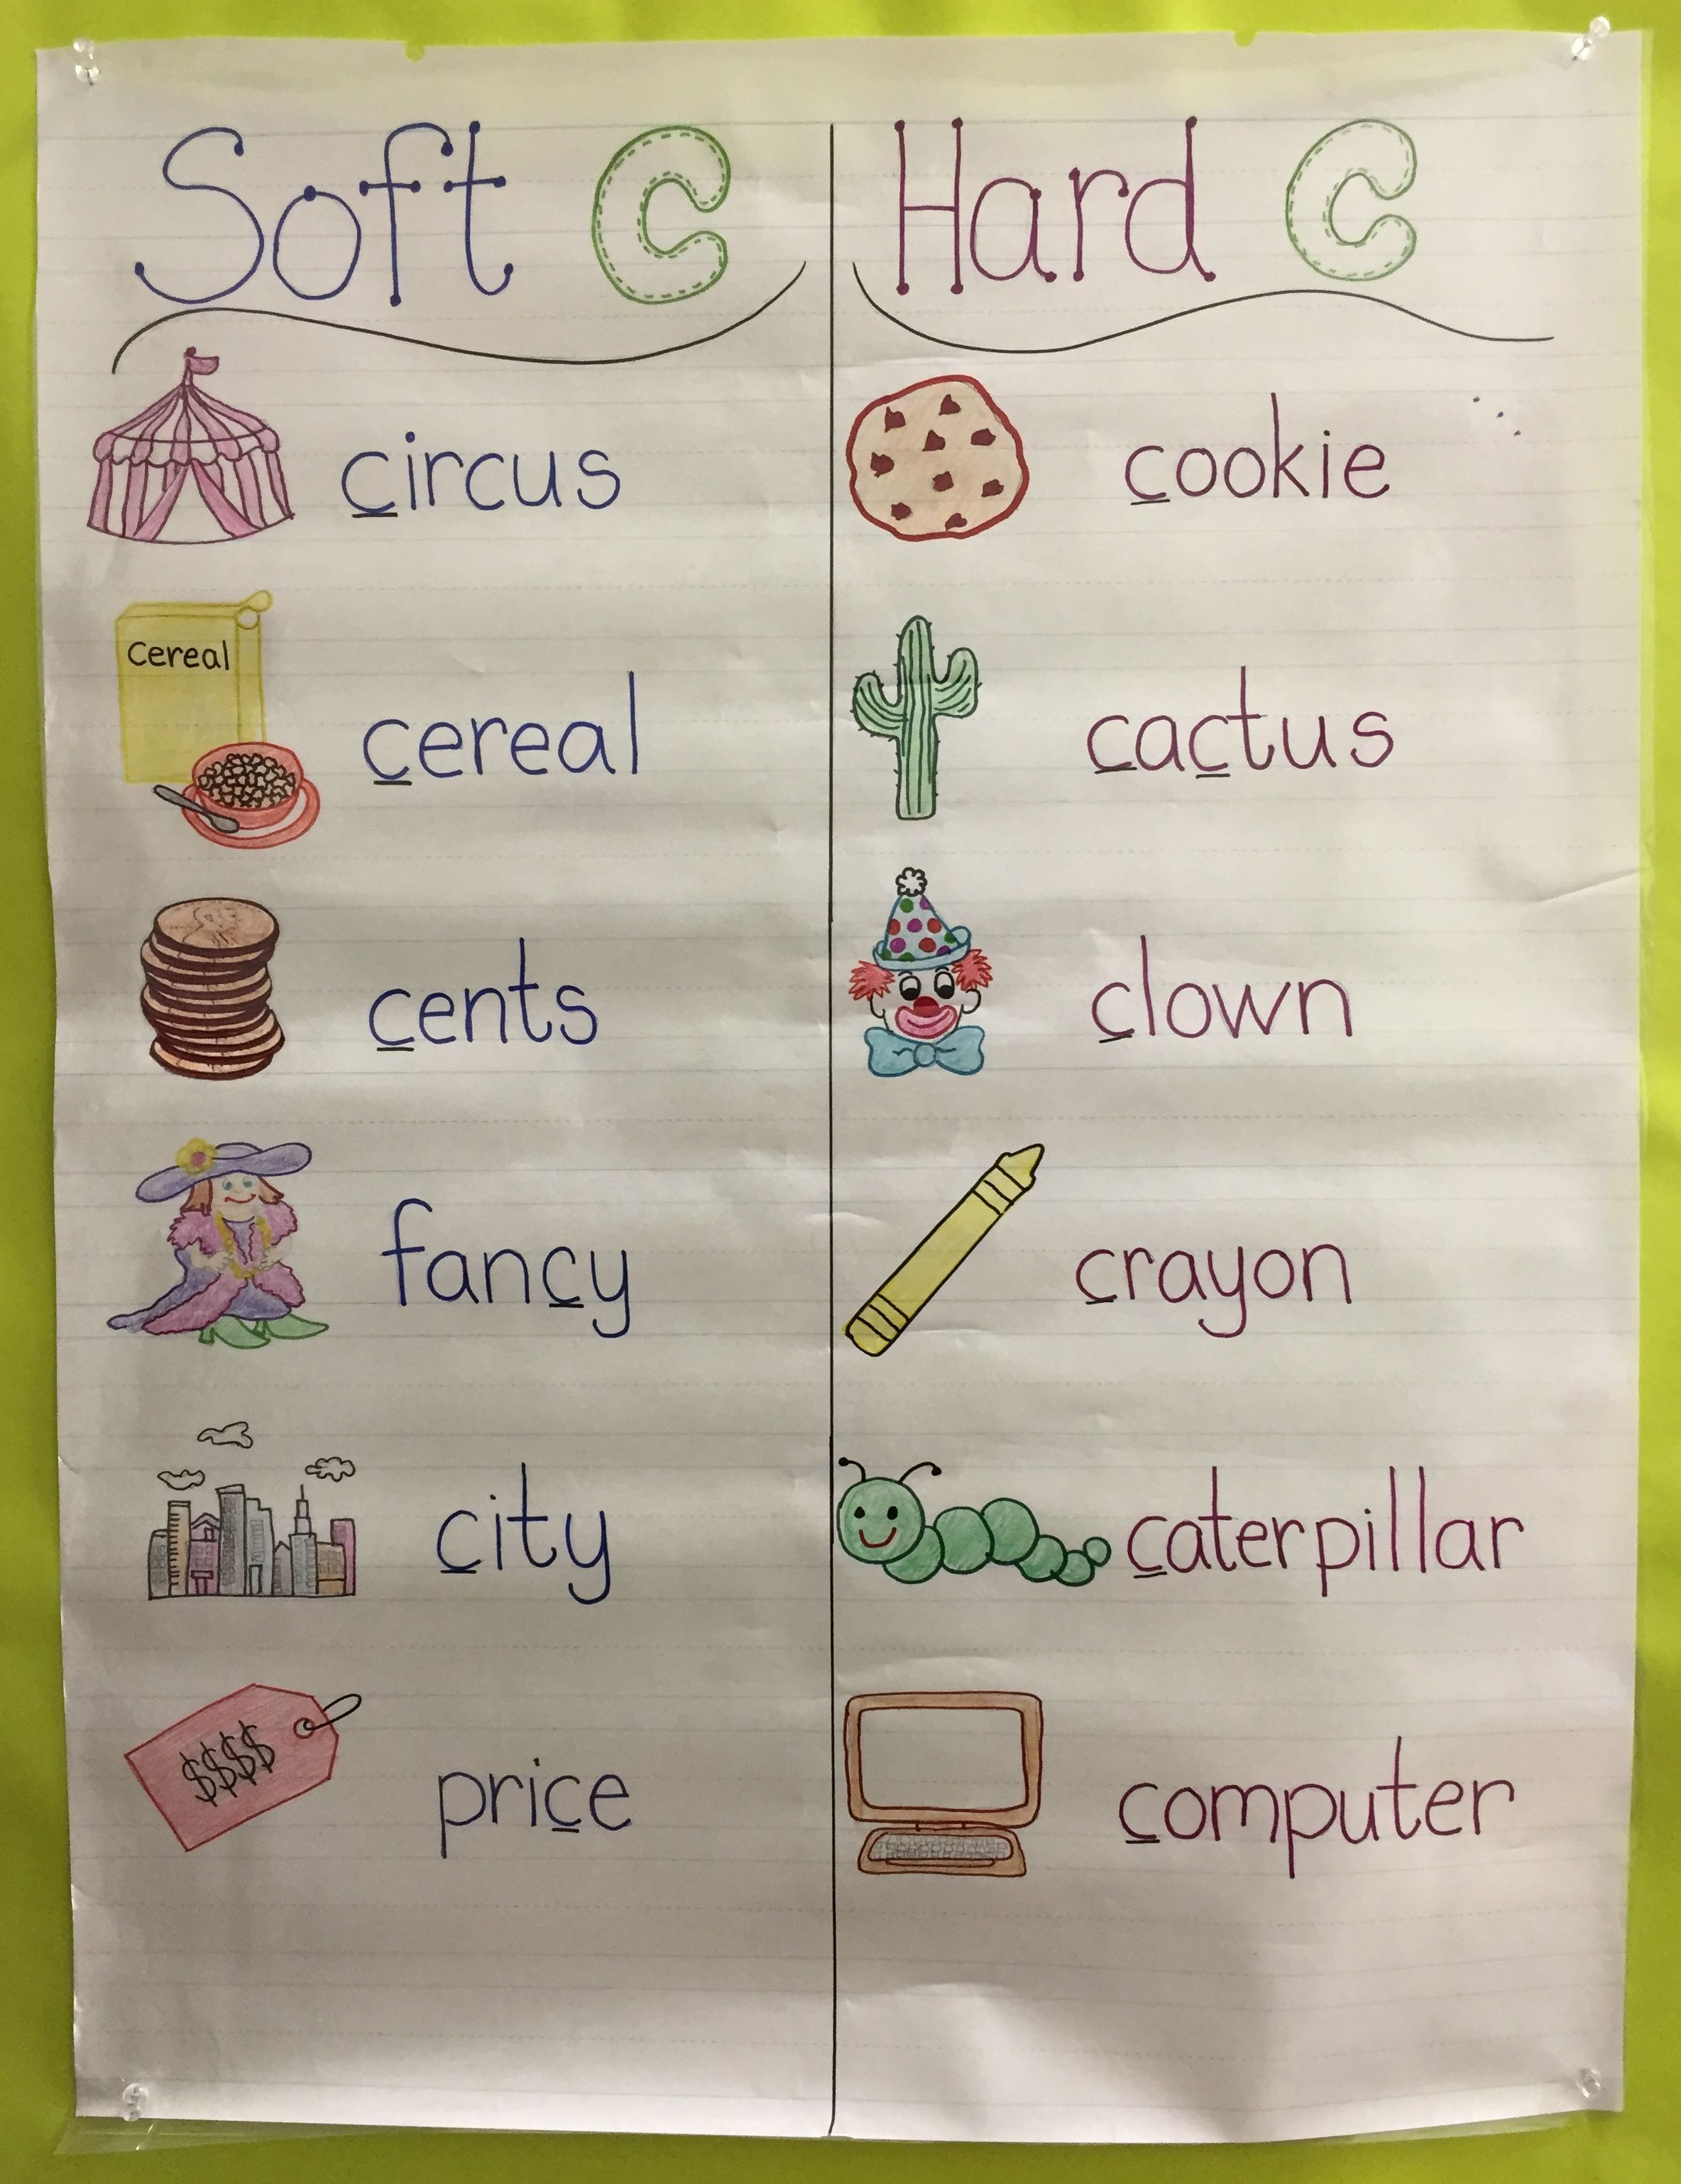 medium resolution of Soft and hard \c\ anchor chart   Anchor charts